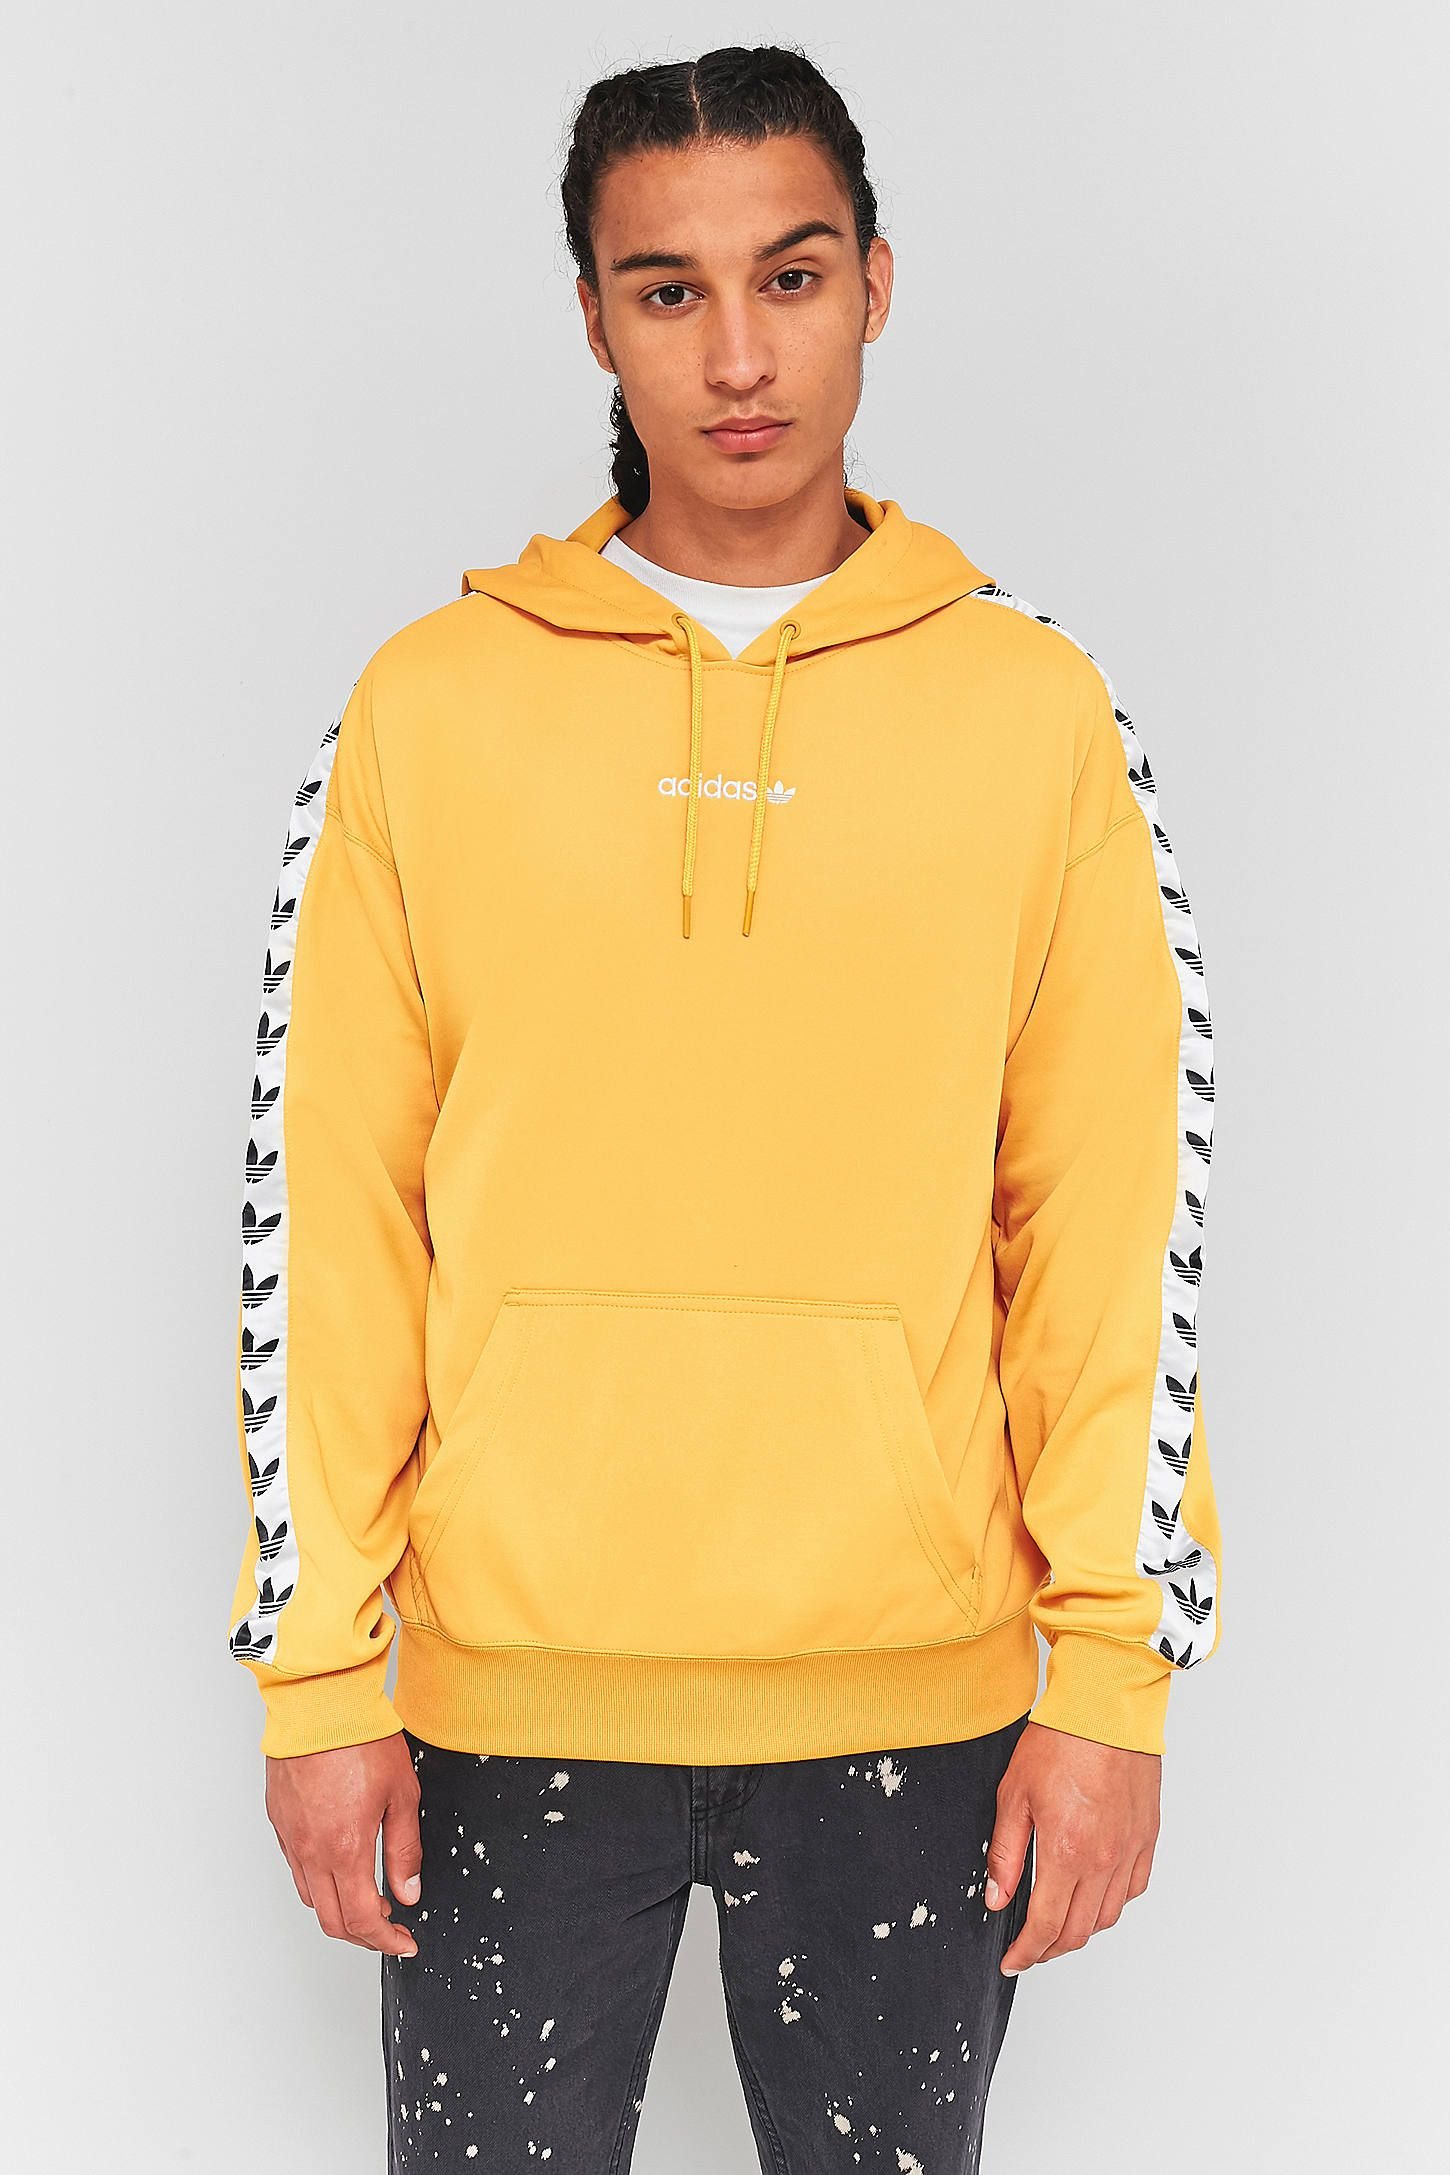 2431e1a75b Slide View  2  adidas TNT Yellow and White Taped Hoodie